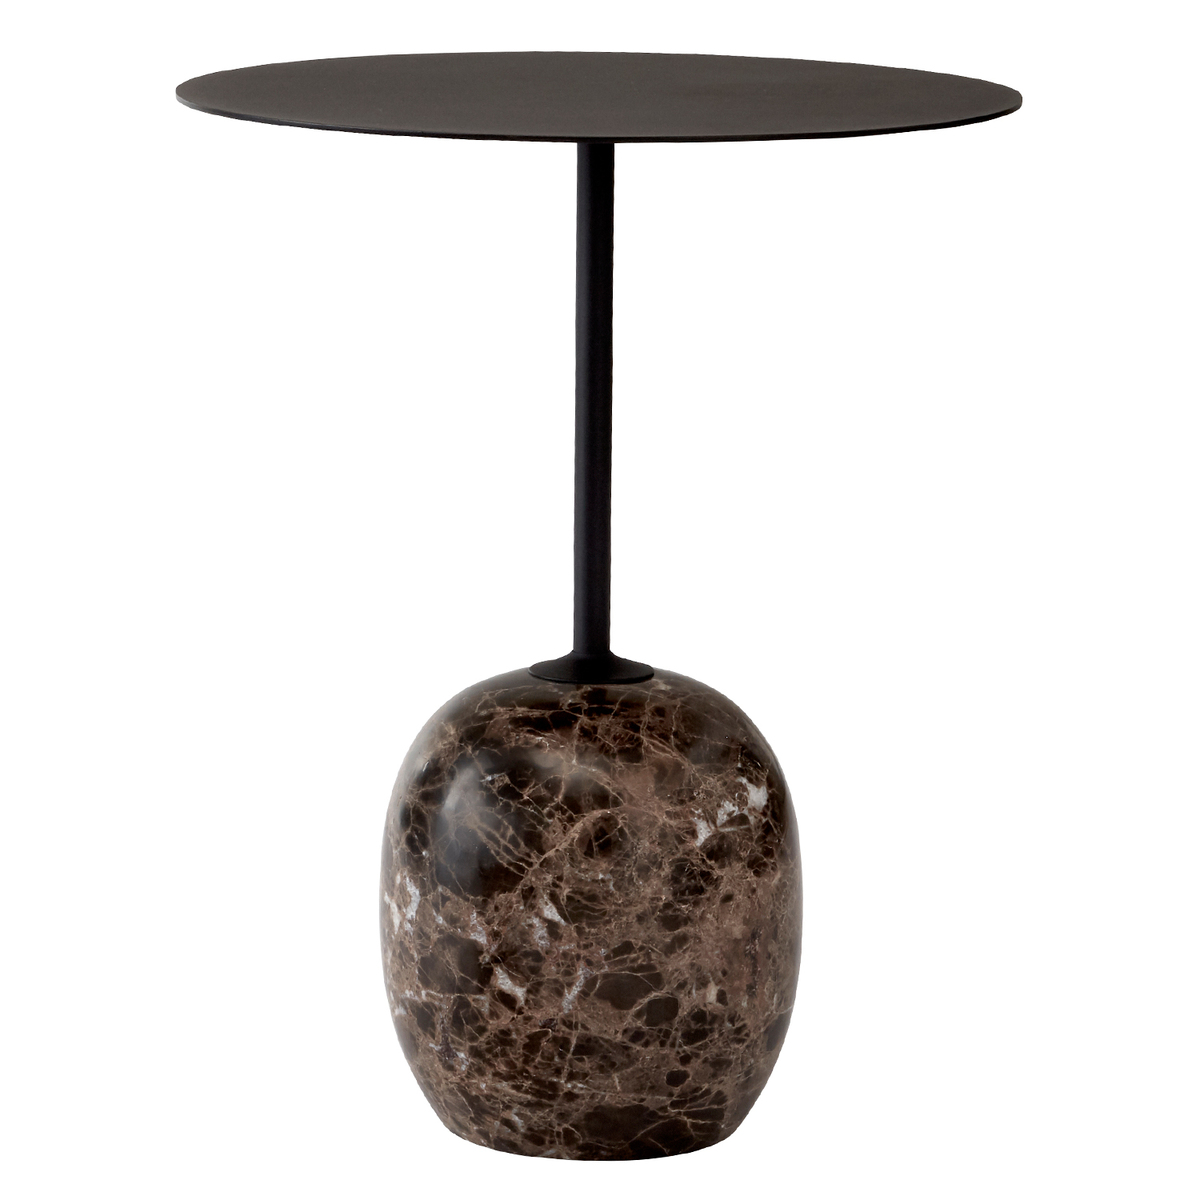 &Tradition Lato LN8 coffee table, black - Emperador marble from &Tradition